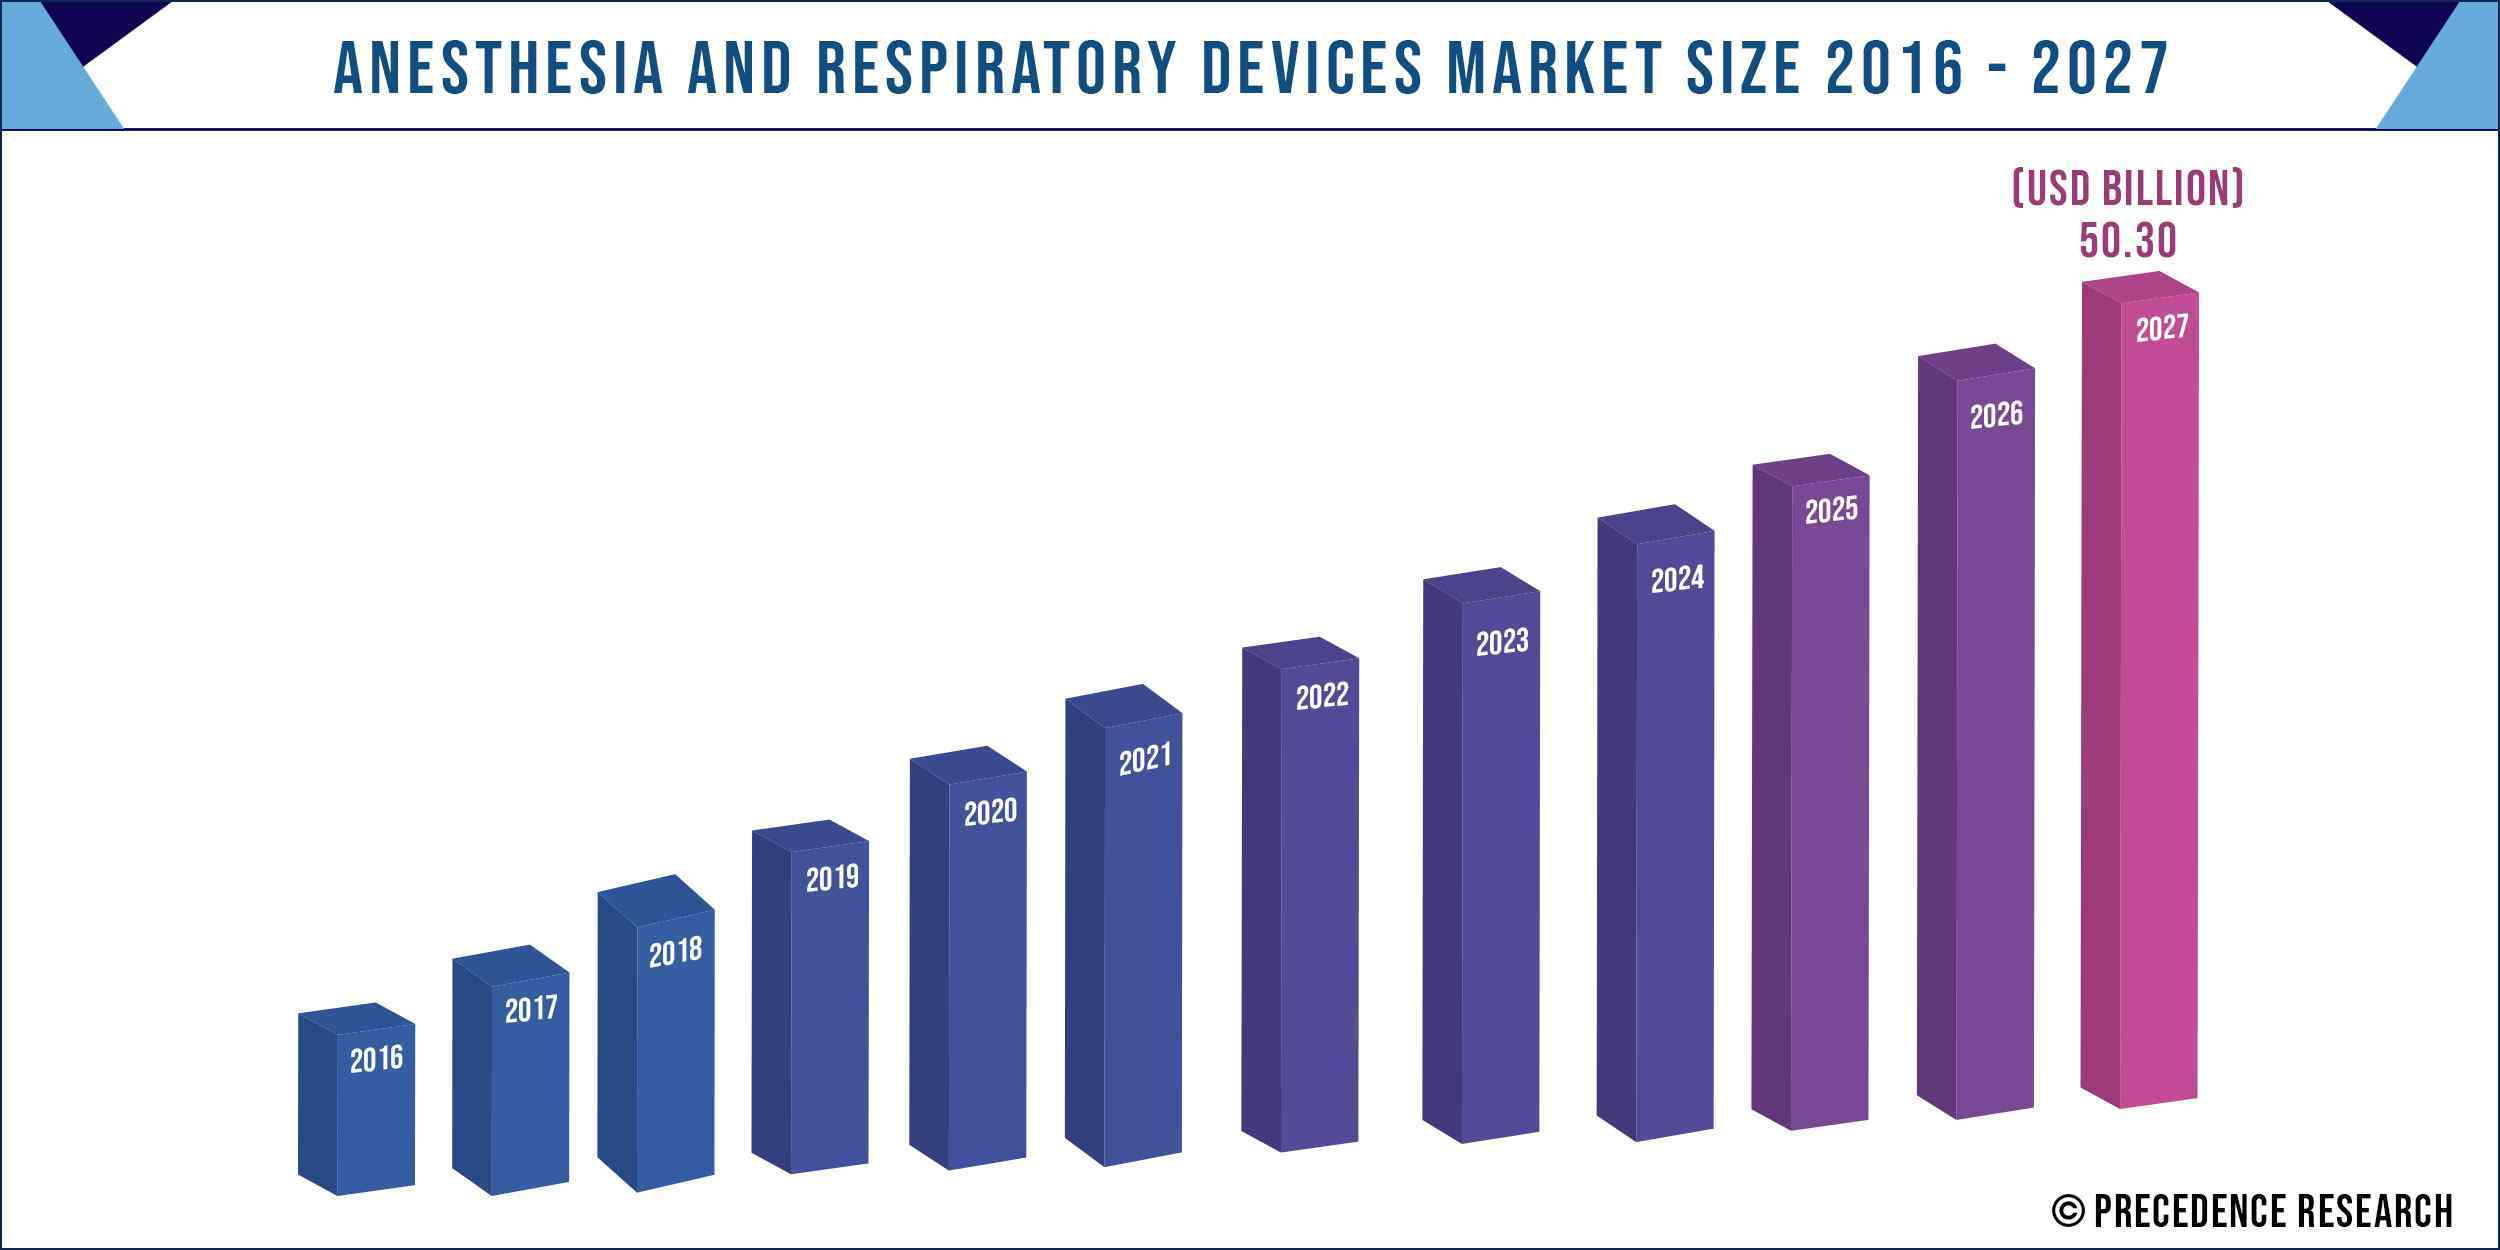 Anesthesia and Respiratory Devices Market Size 2016 to 2027